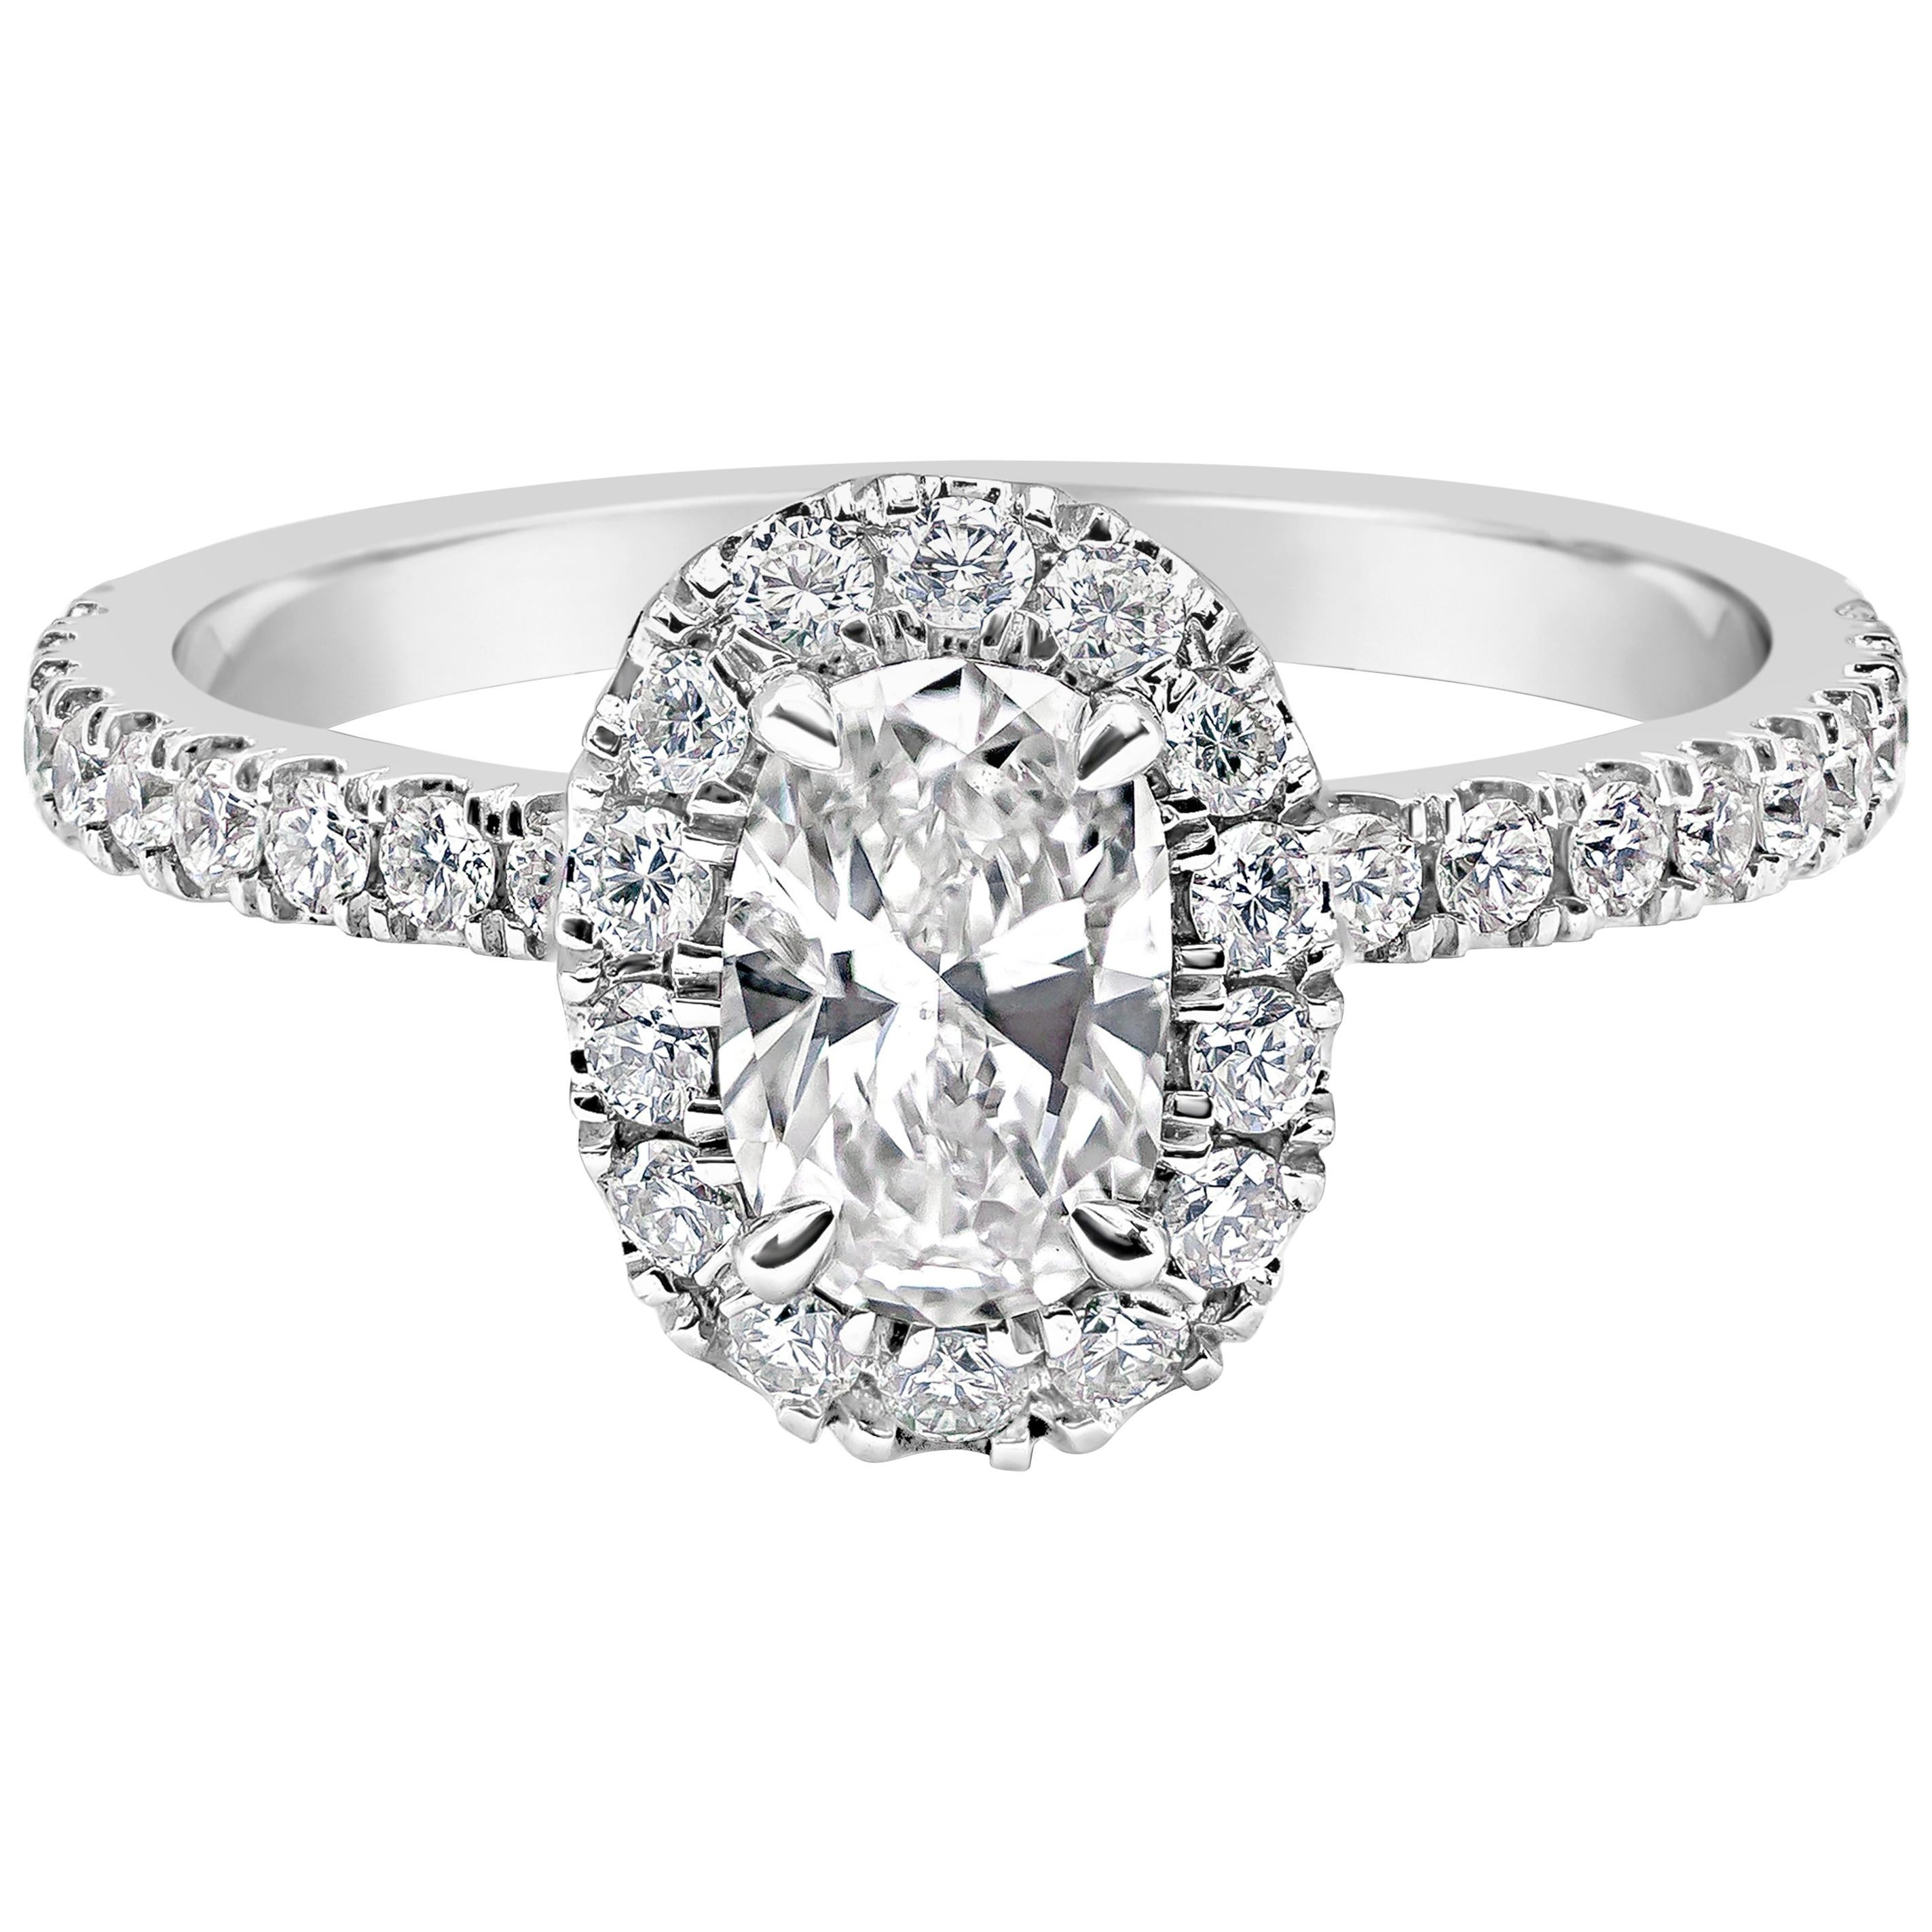 Roman Malakov Oval Cut Diamond Halo Engagement Ring